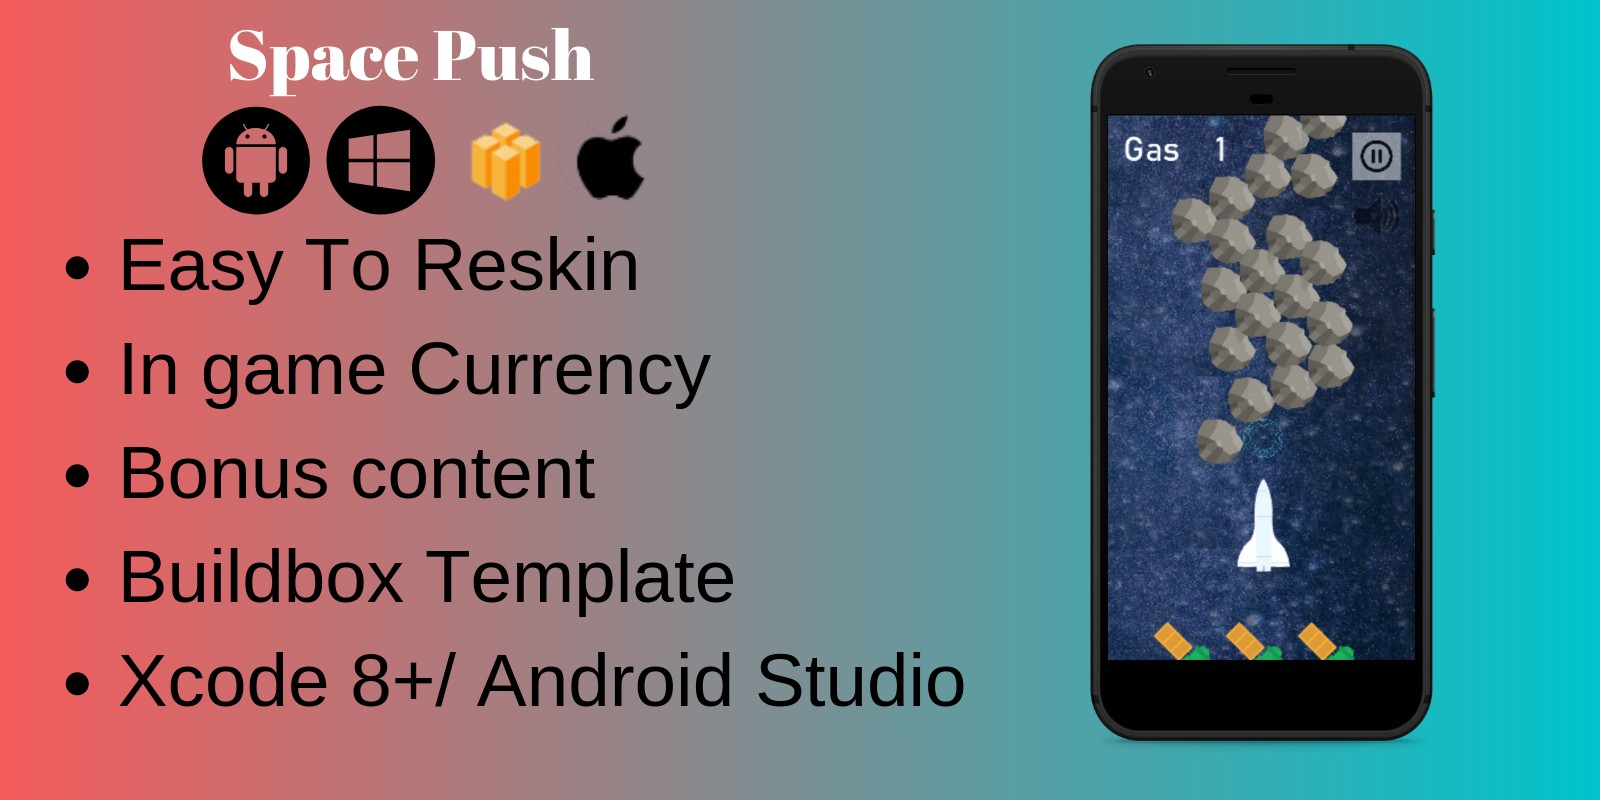 Space Push - Buildbox Template